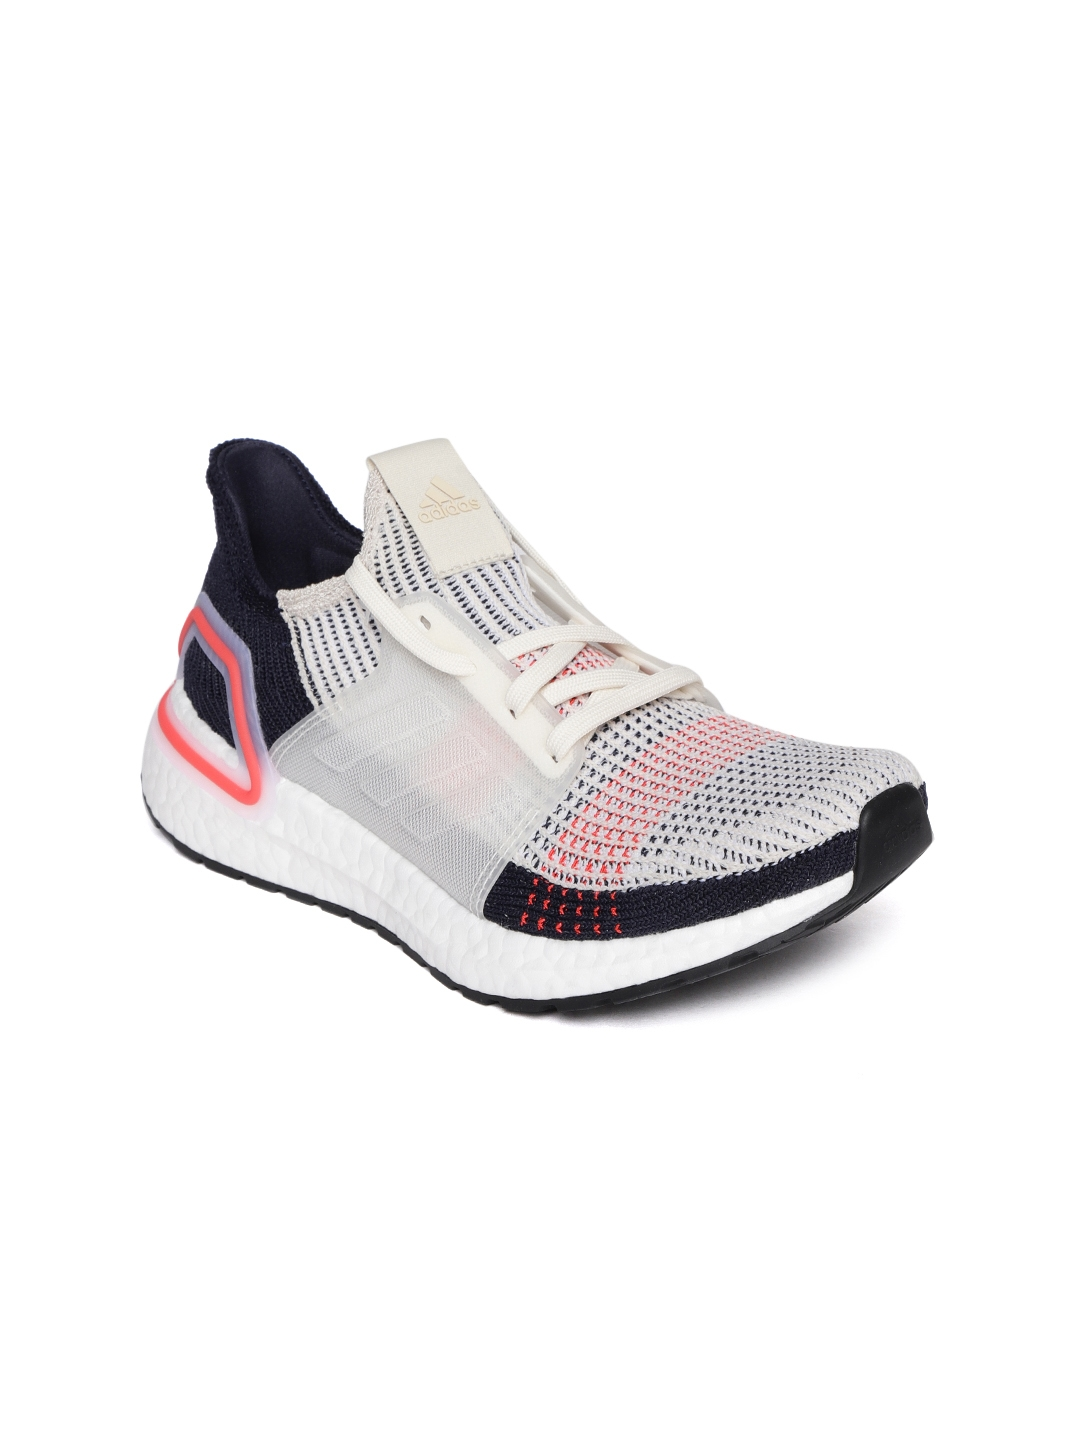 save off 18564 0ec21 ADIDAS Women Off-White   Navy Blue Ultraboost 19 Running Shoes